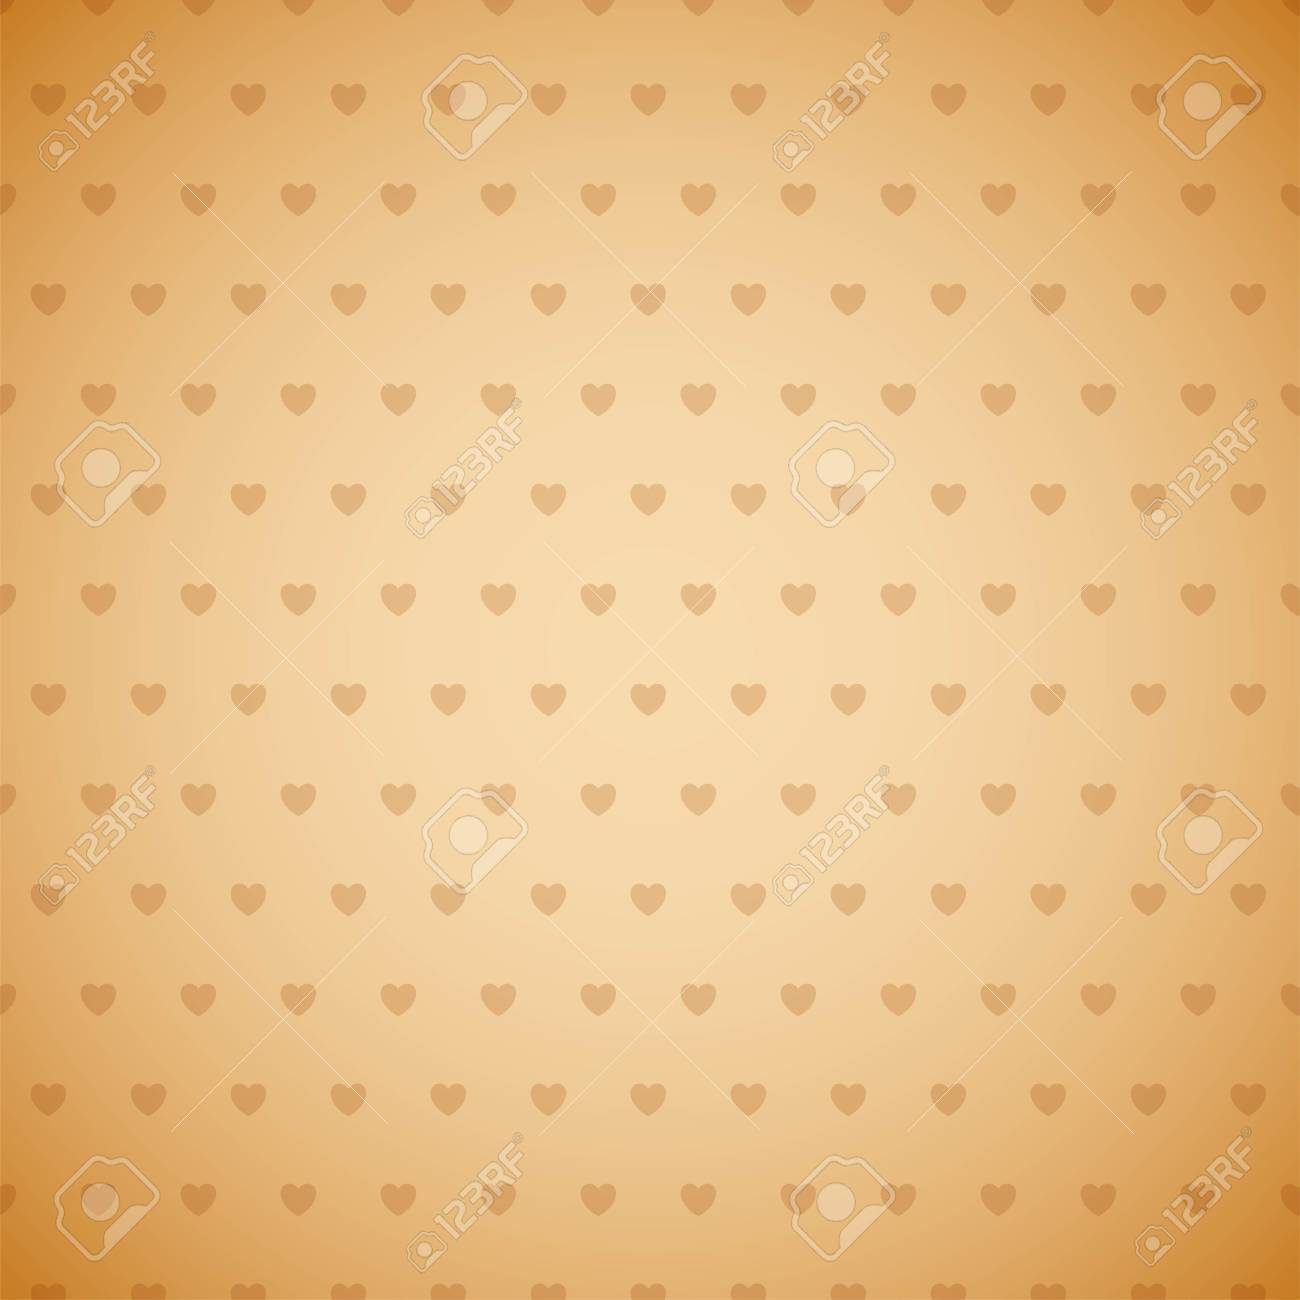 Abstract heart seamless pattern. - 114708511